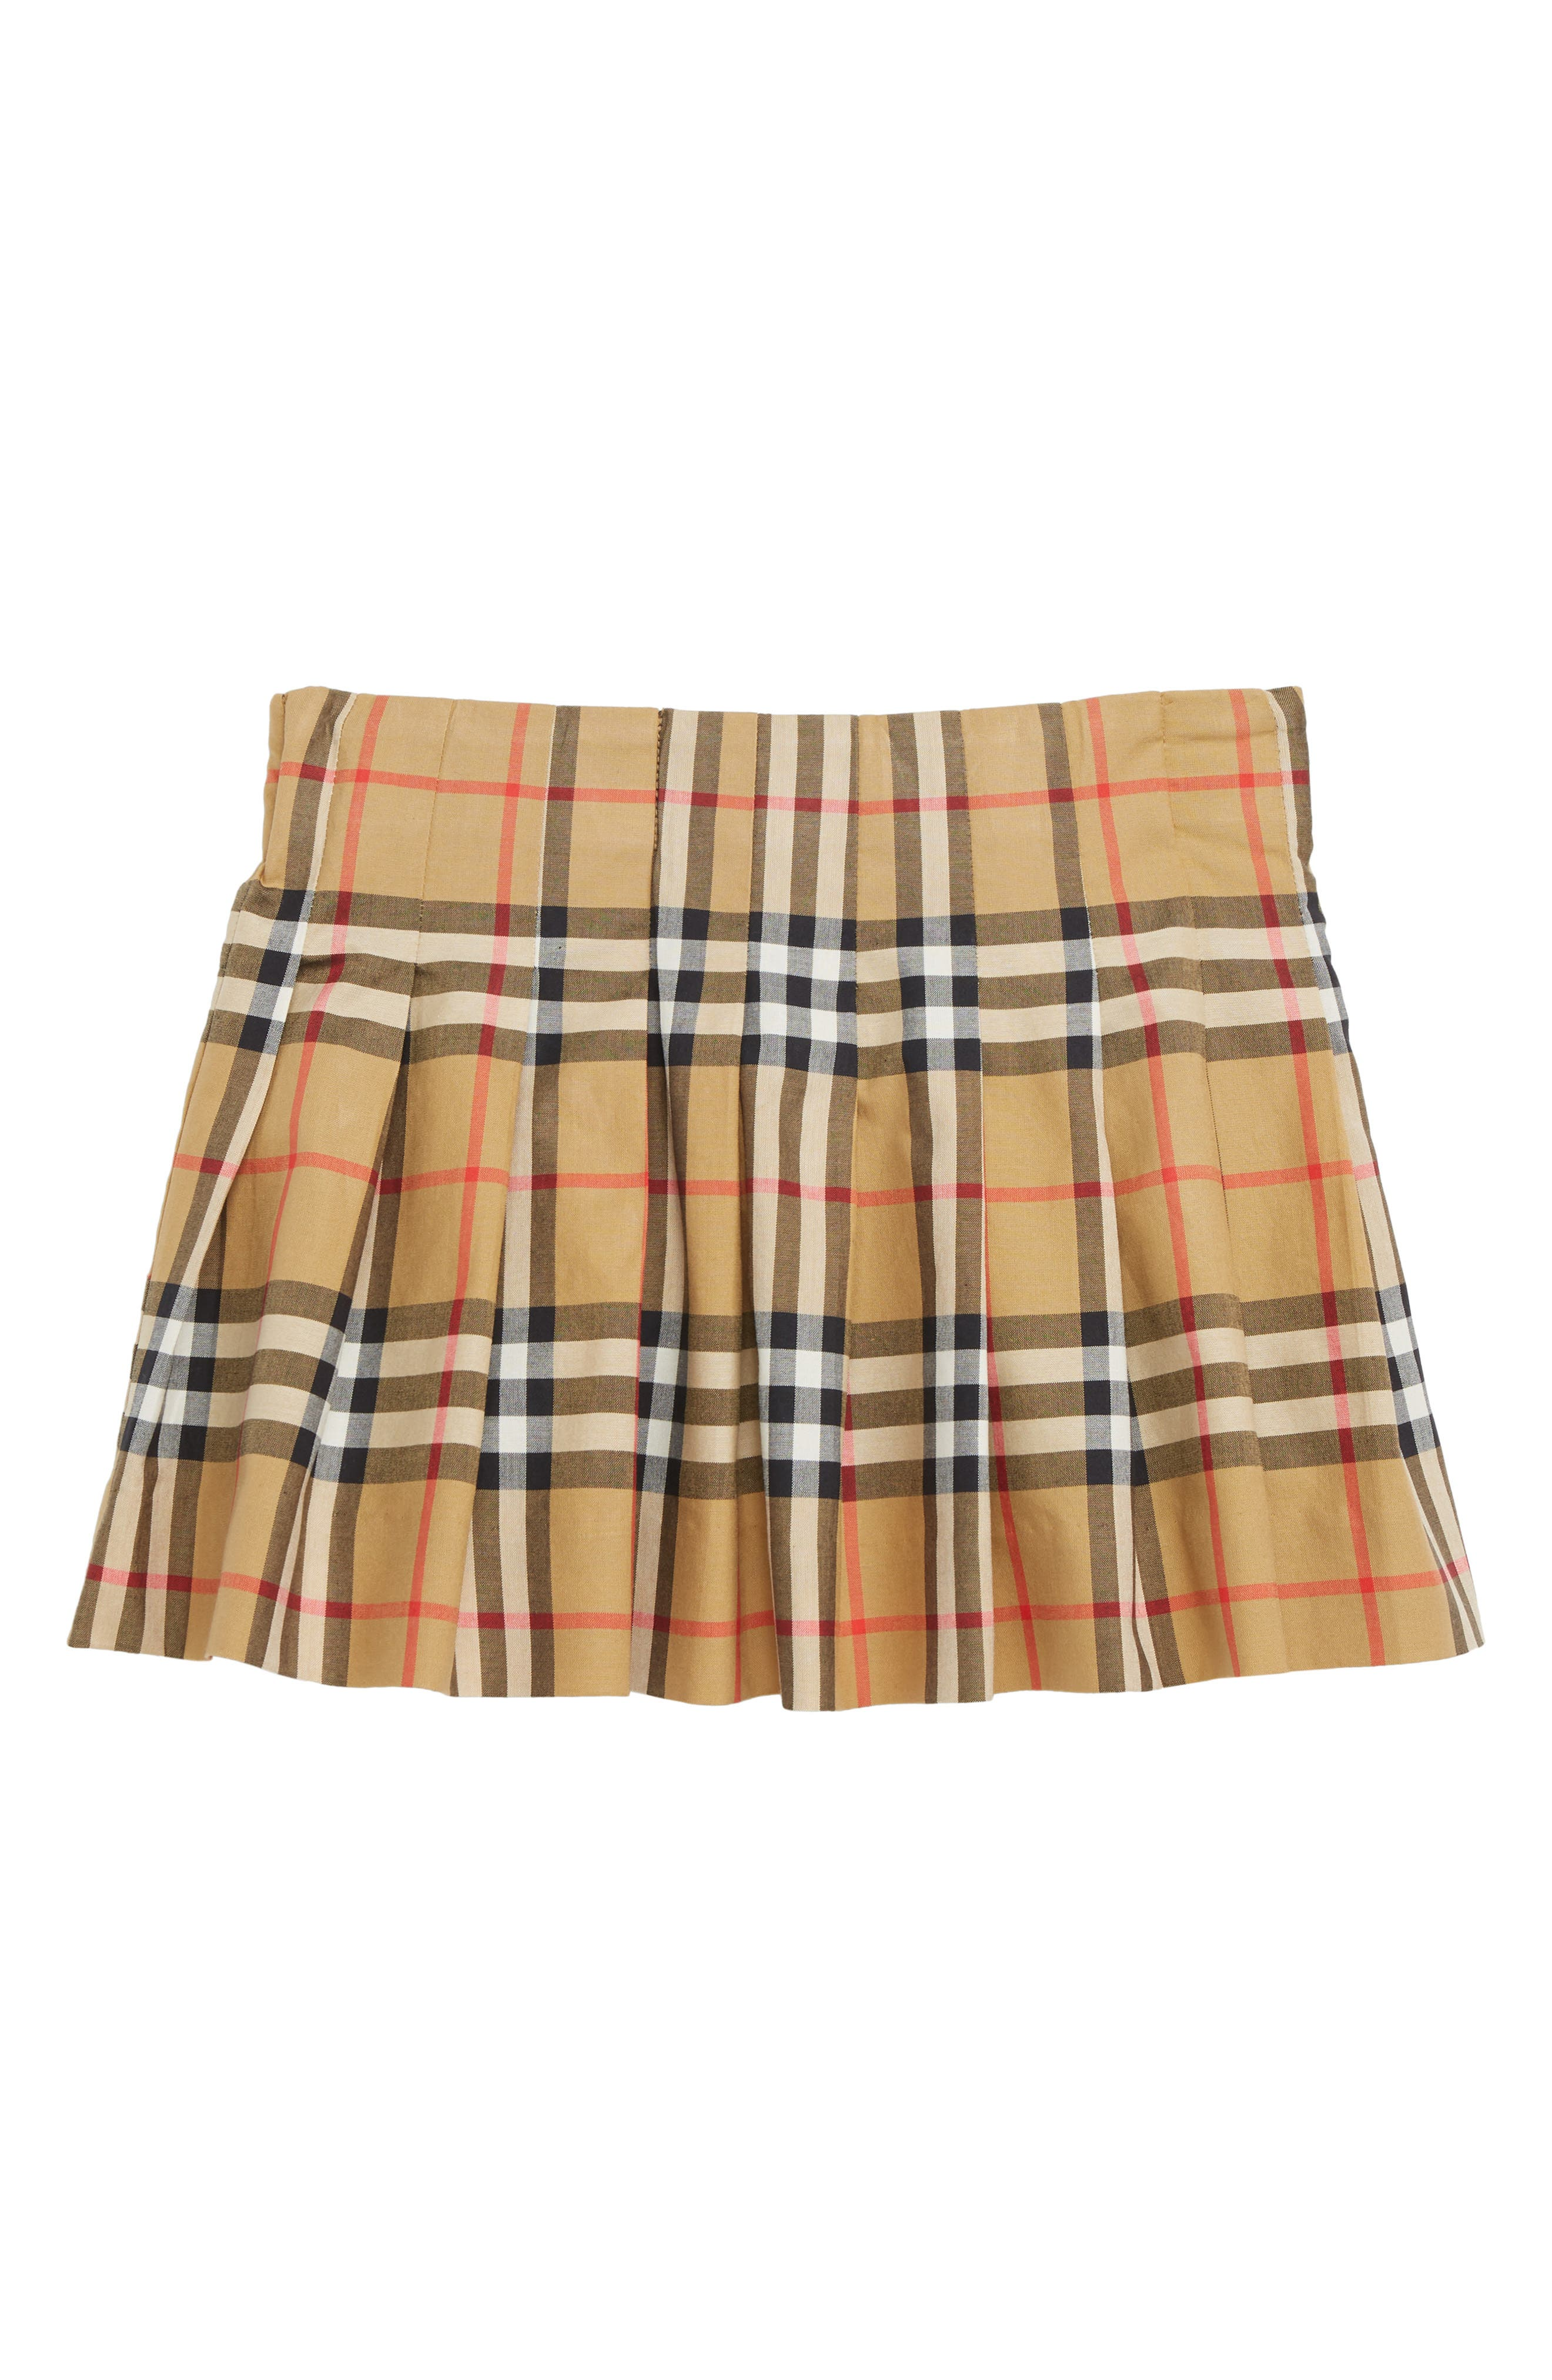 BURBERRY Pearl Pleated Vintage Check Skirt, Main, color, ANTIQUE YELLOW